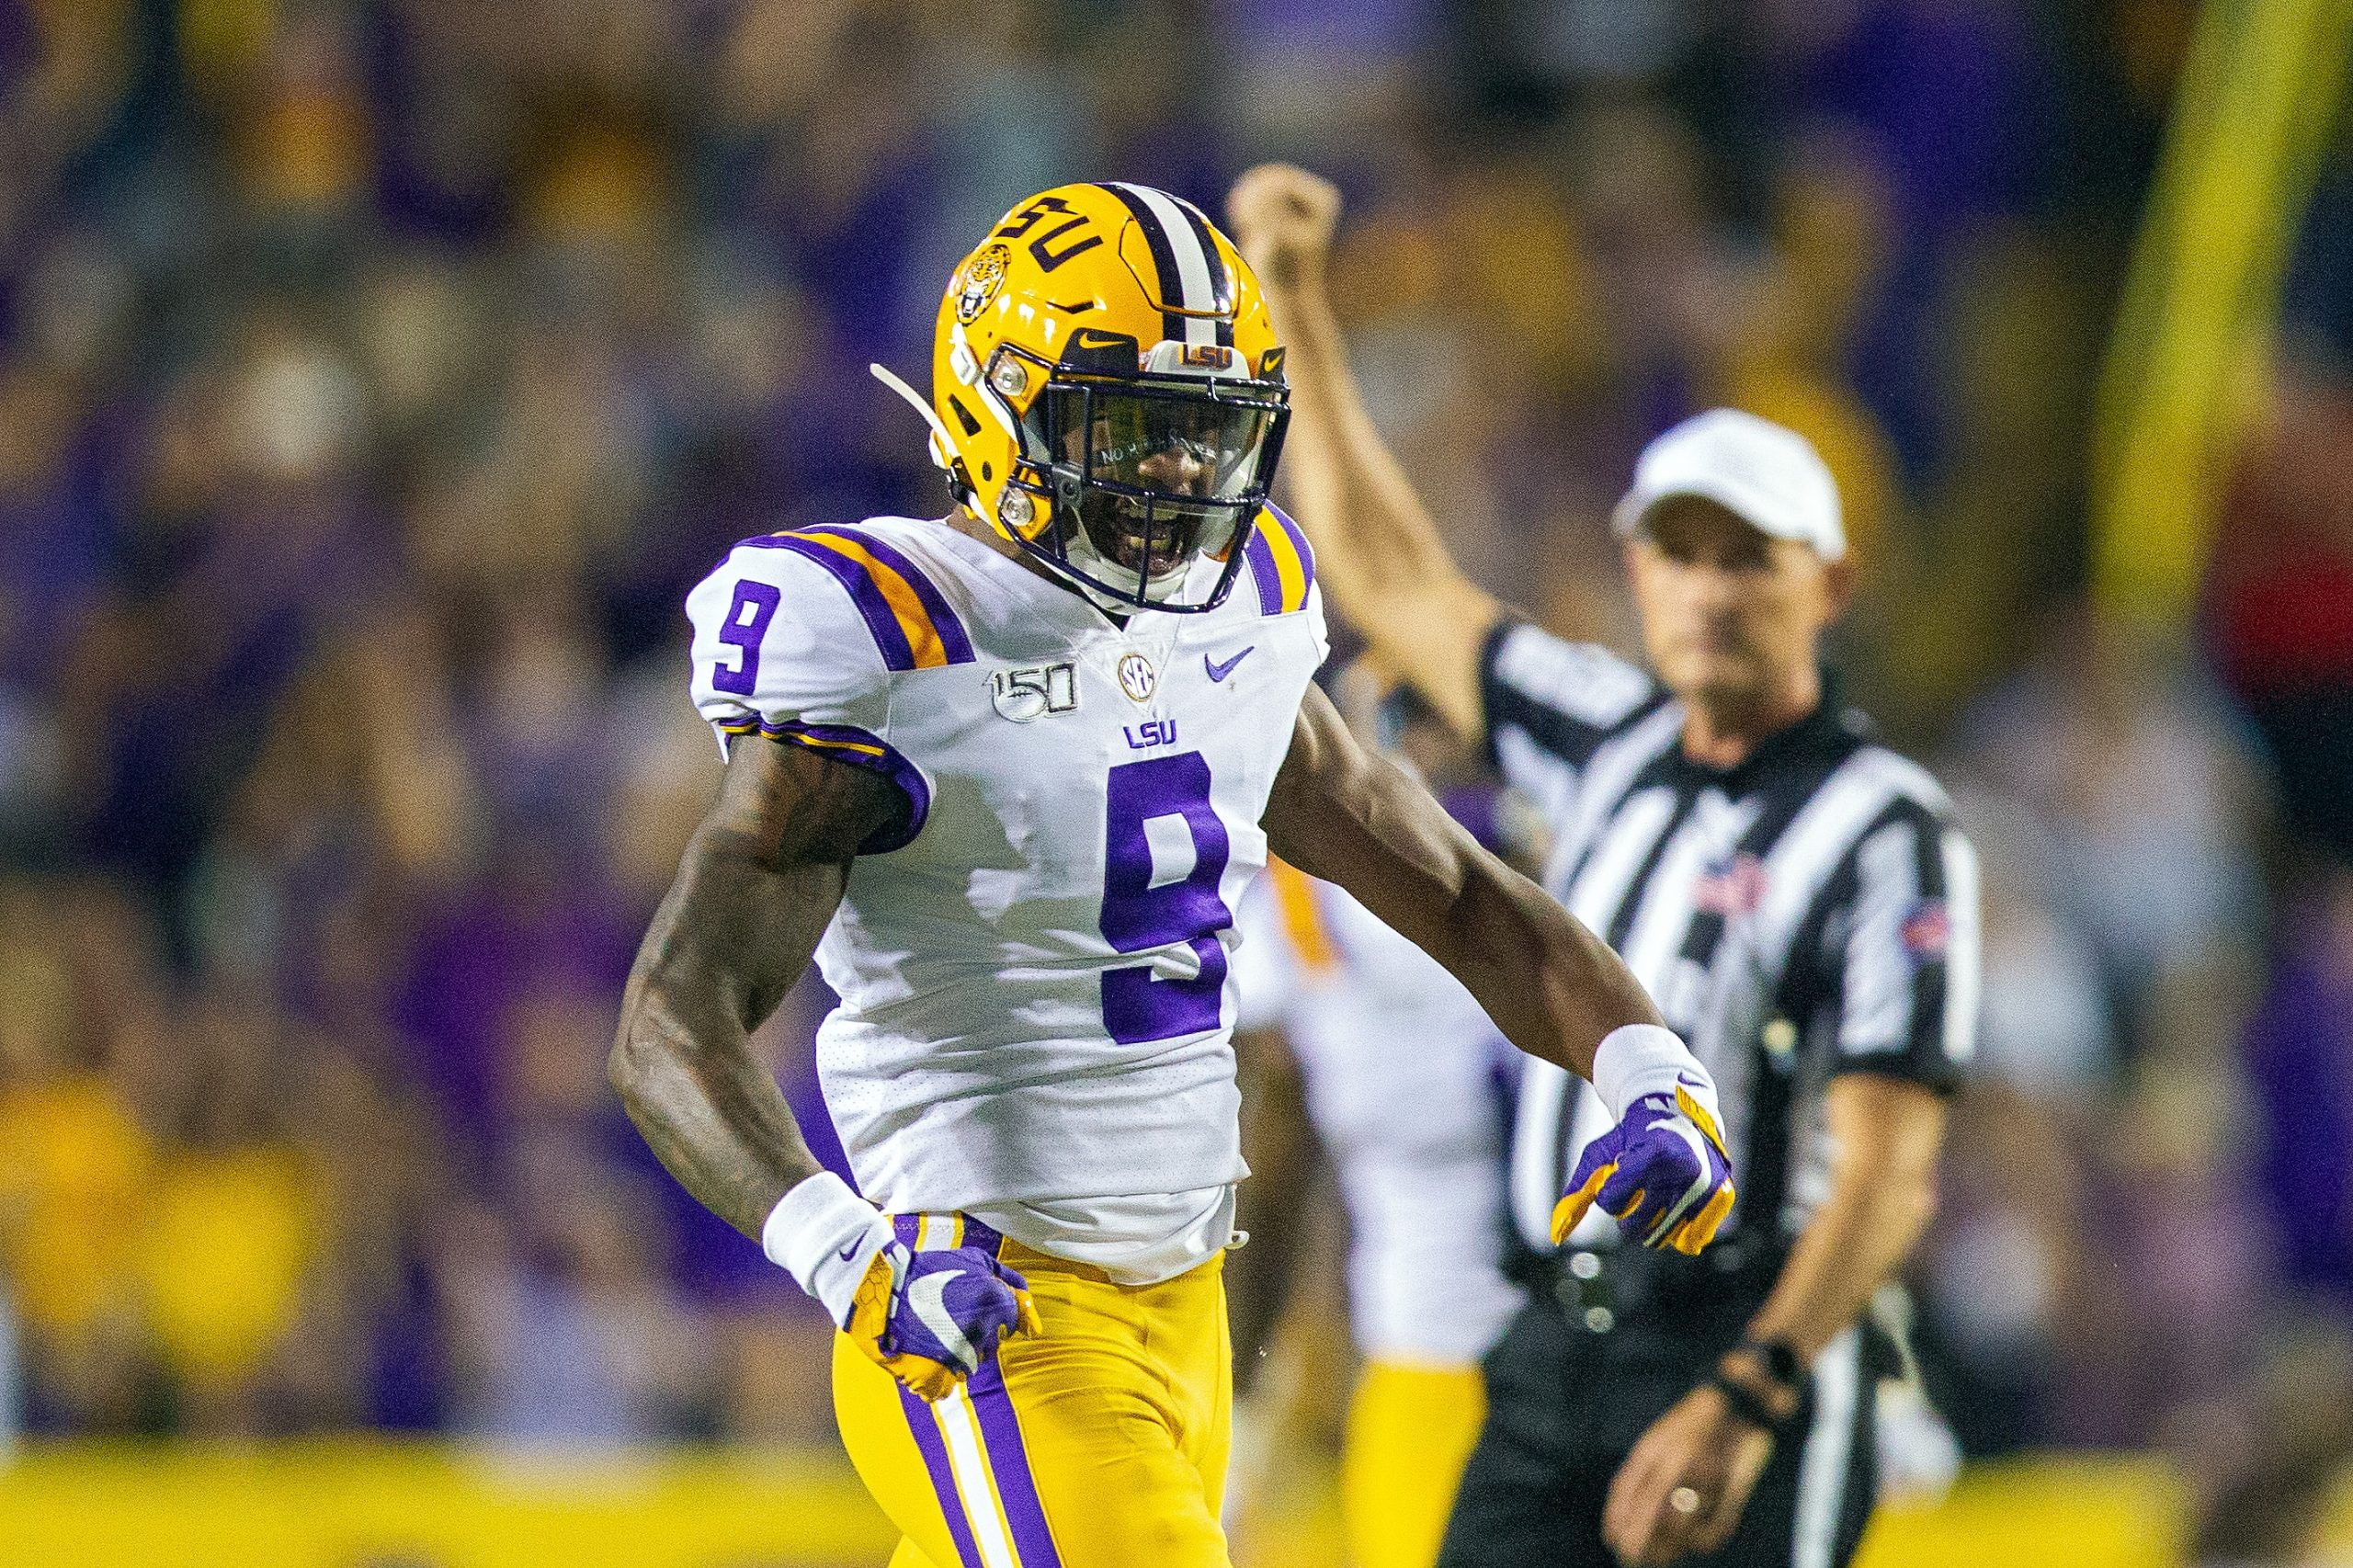 Marcel Brooks of LSU Tigers celebrating during a football game